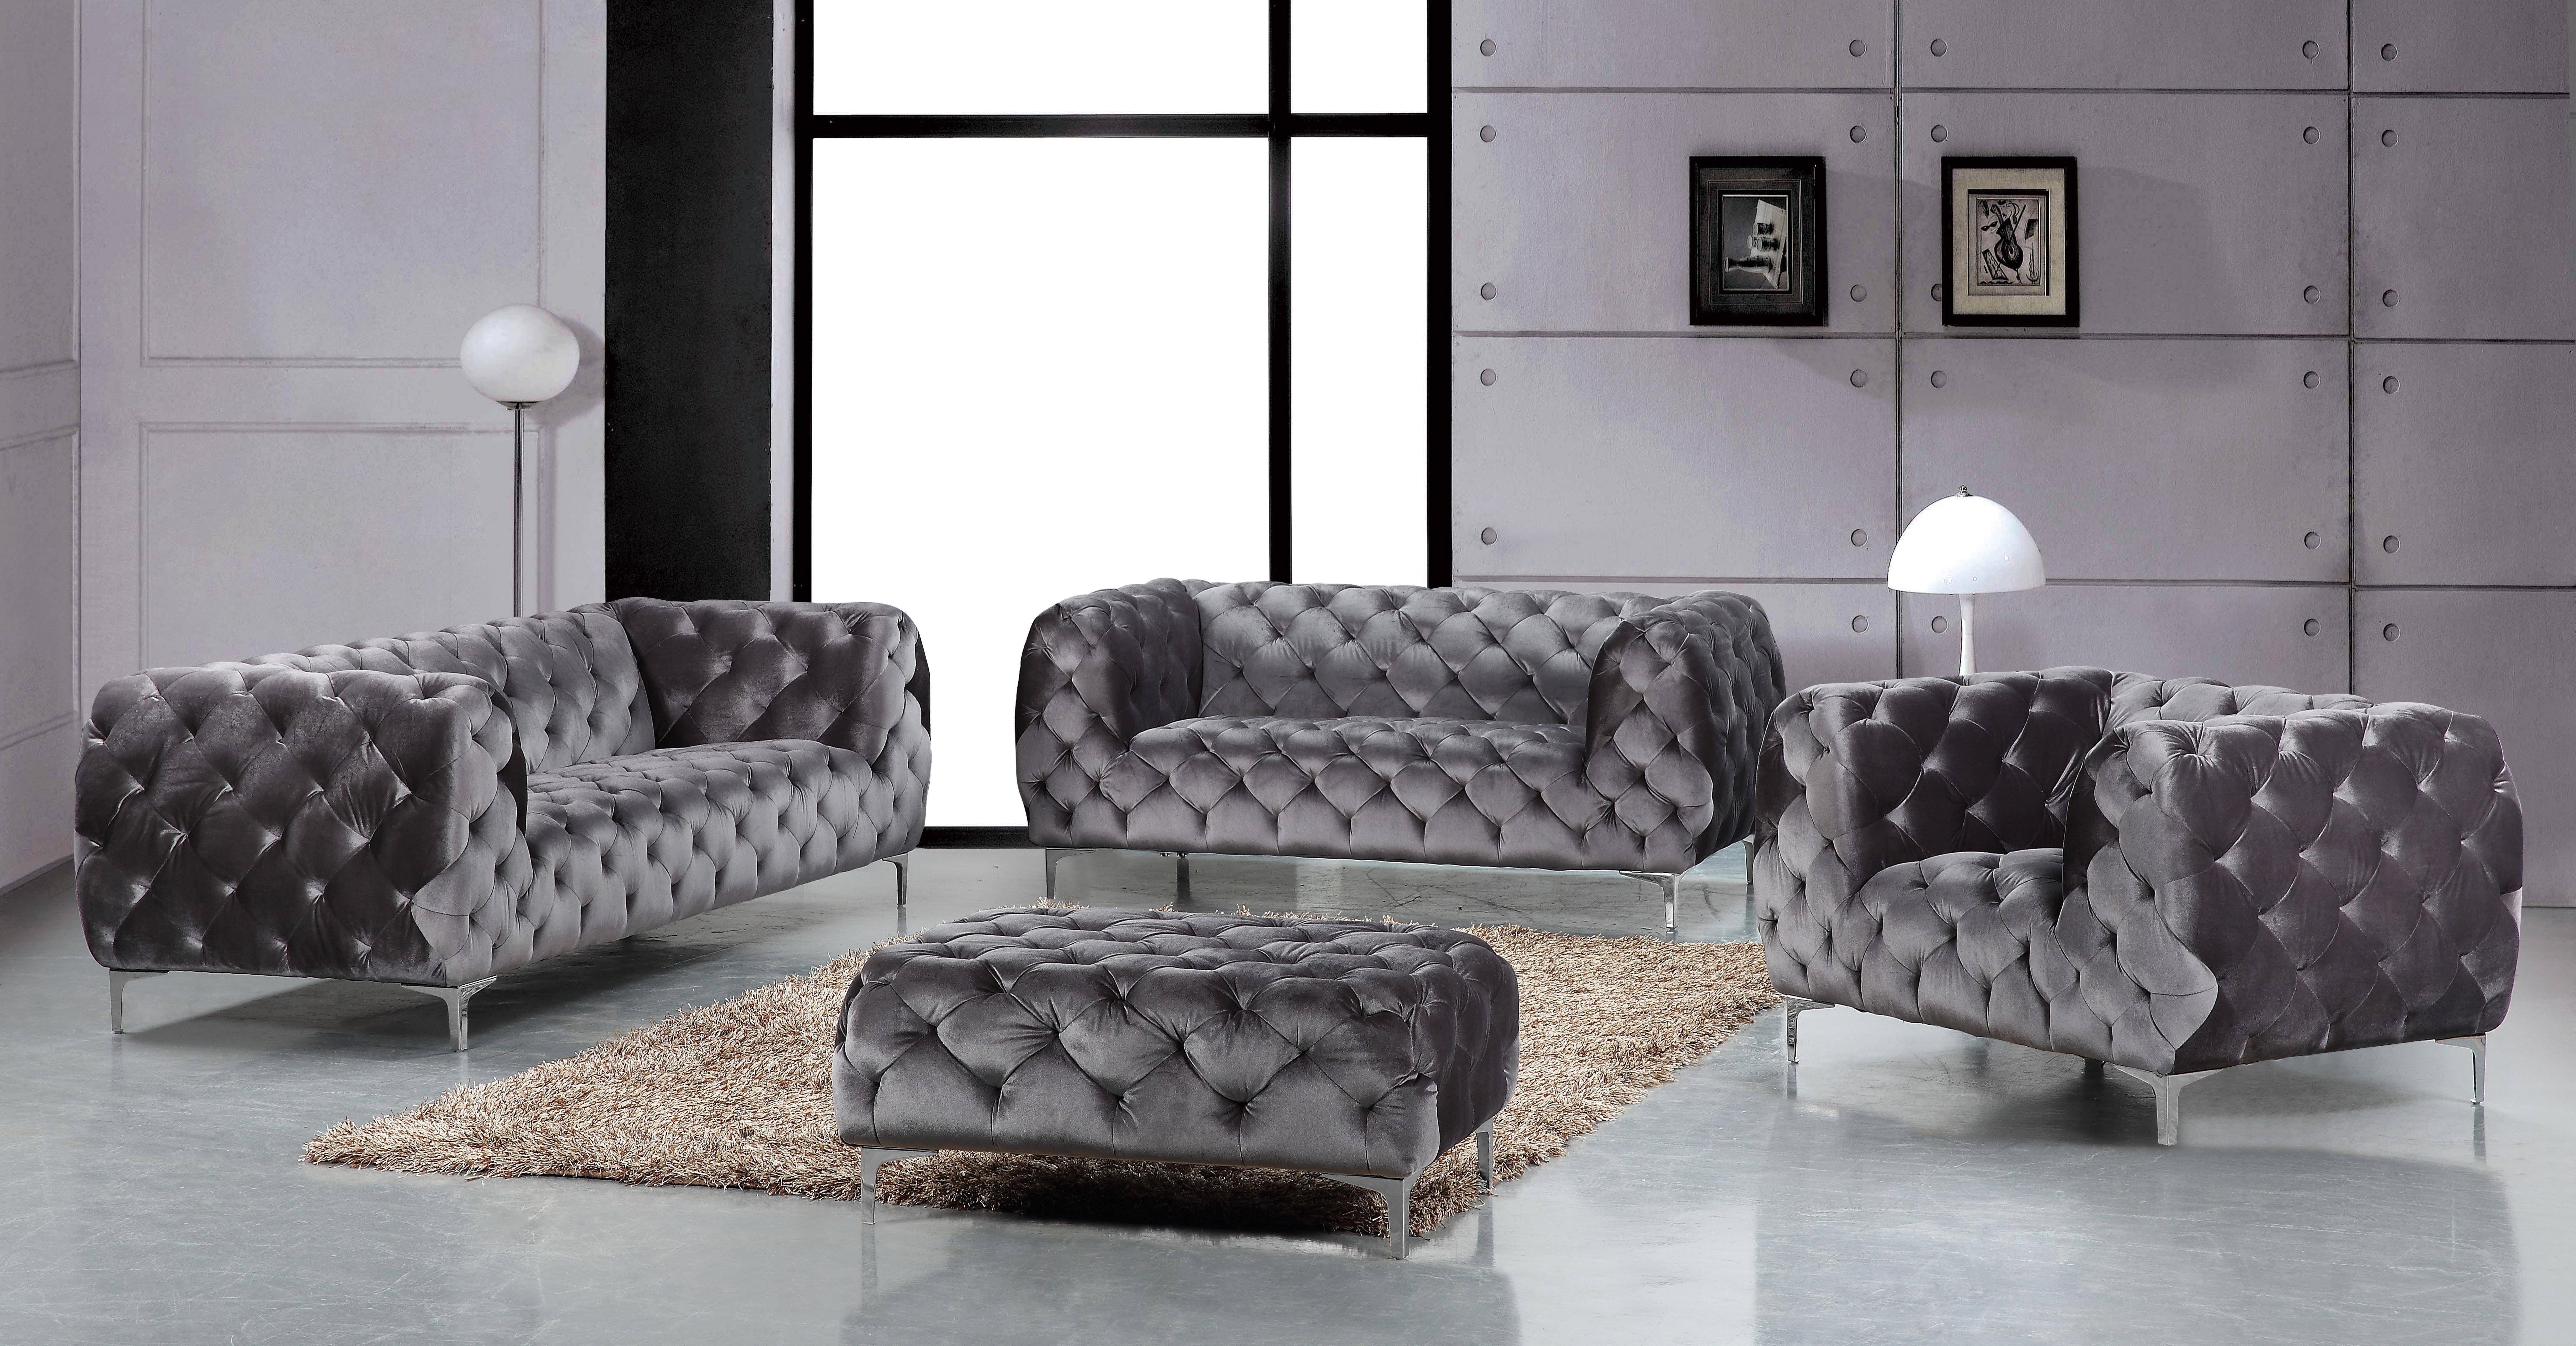 Meridian 646 Mercer Grey Tufted Sofa Set 3Pcs Contemporary Modern Inside Mercer Foam Oversized Sofa Chairs (Image 13 of 25)